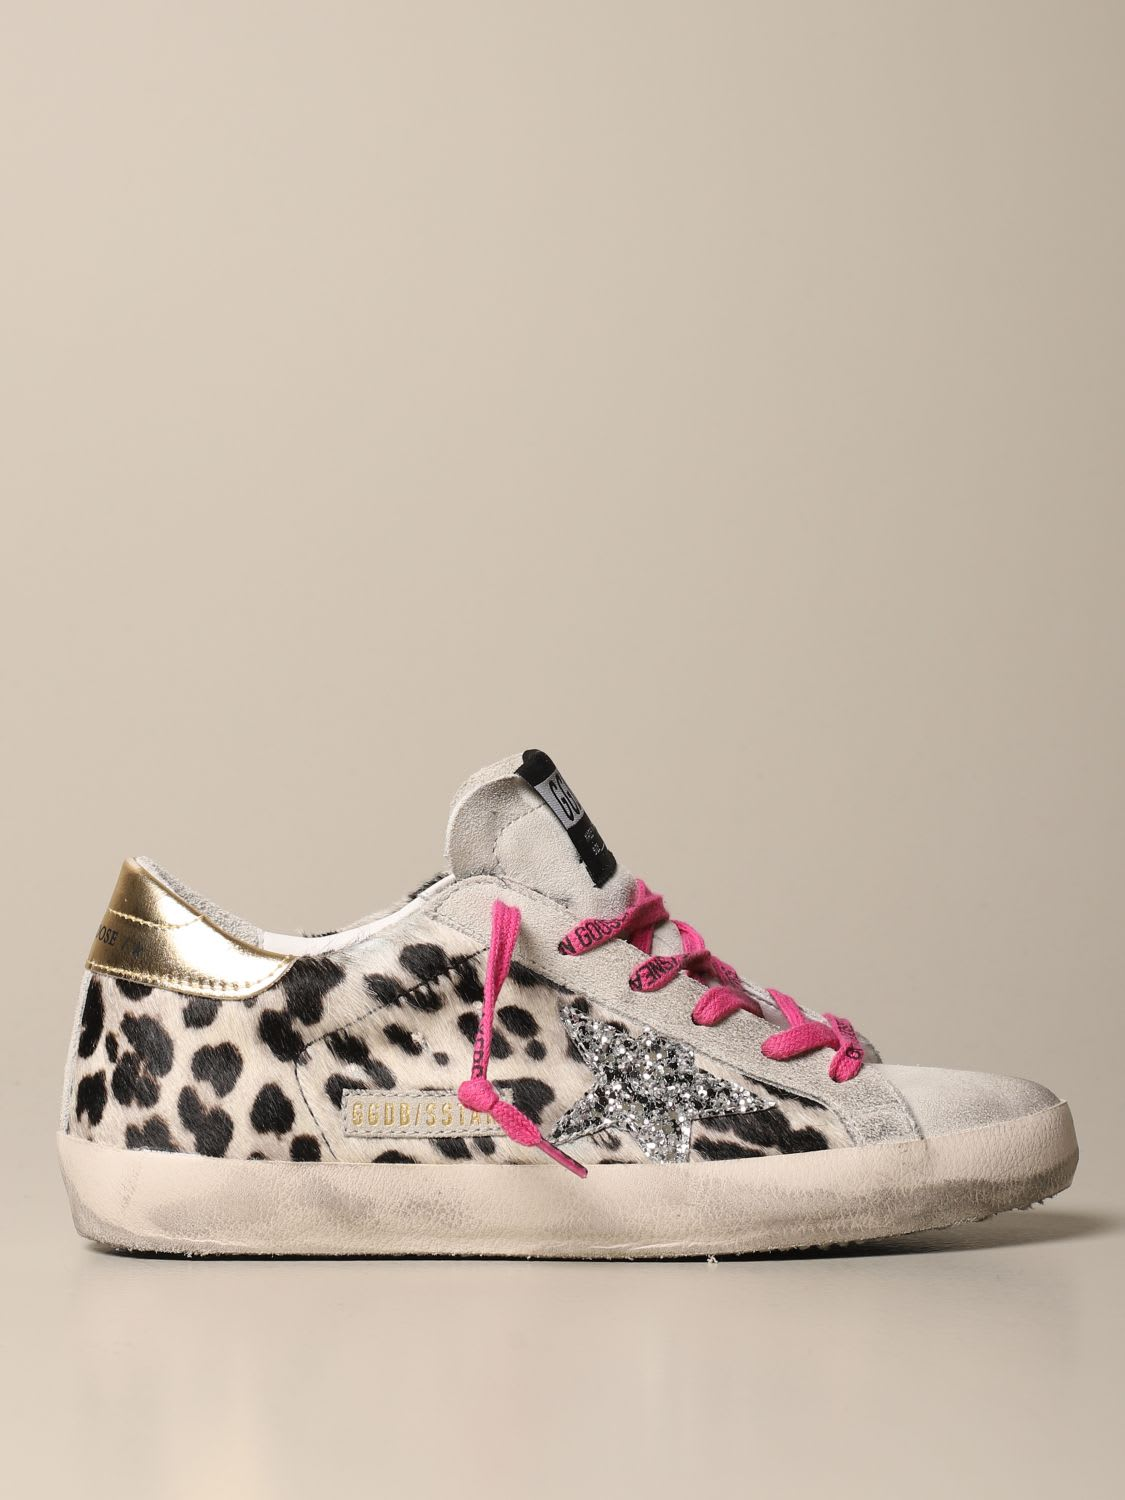 Sneakers Superstar Classic Golden Goose Sneakers In Spotted Pony SkinComposition: 100% Gomma, 97% Pelle Bovina, 2% Polietile